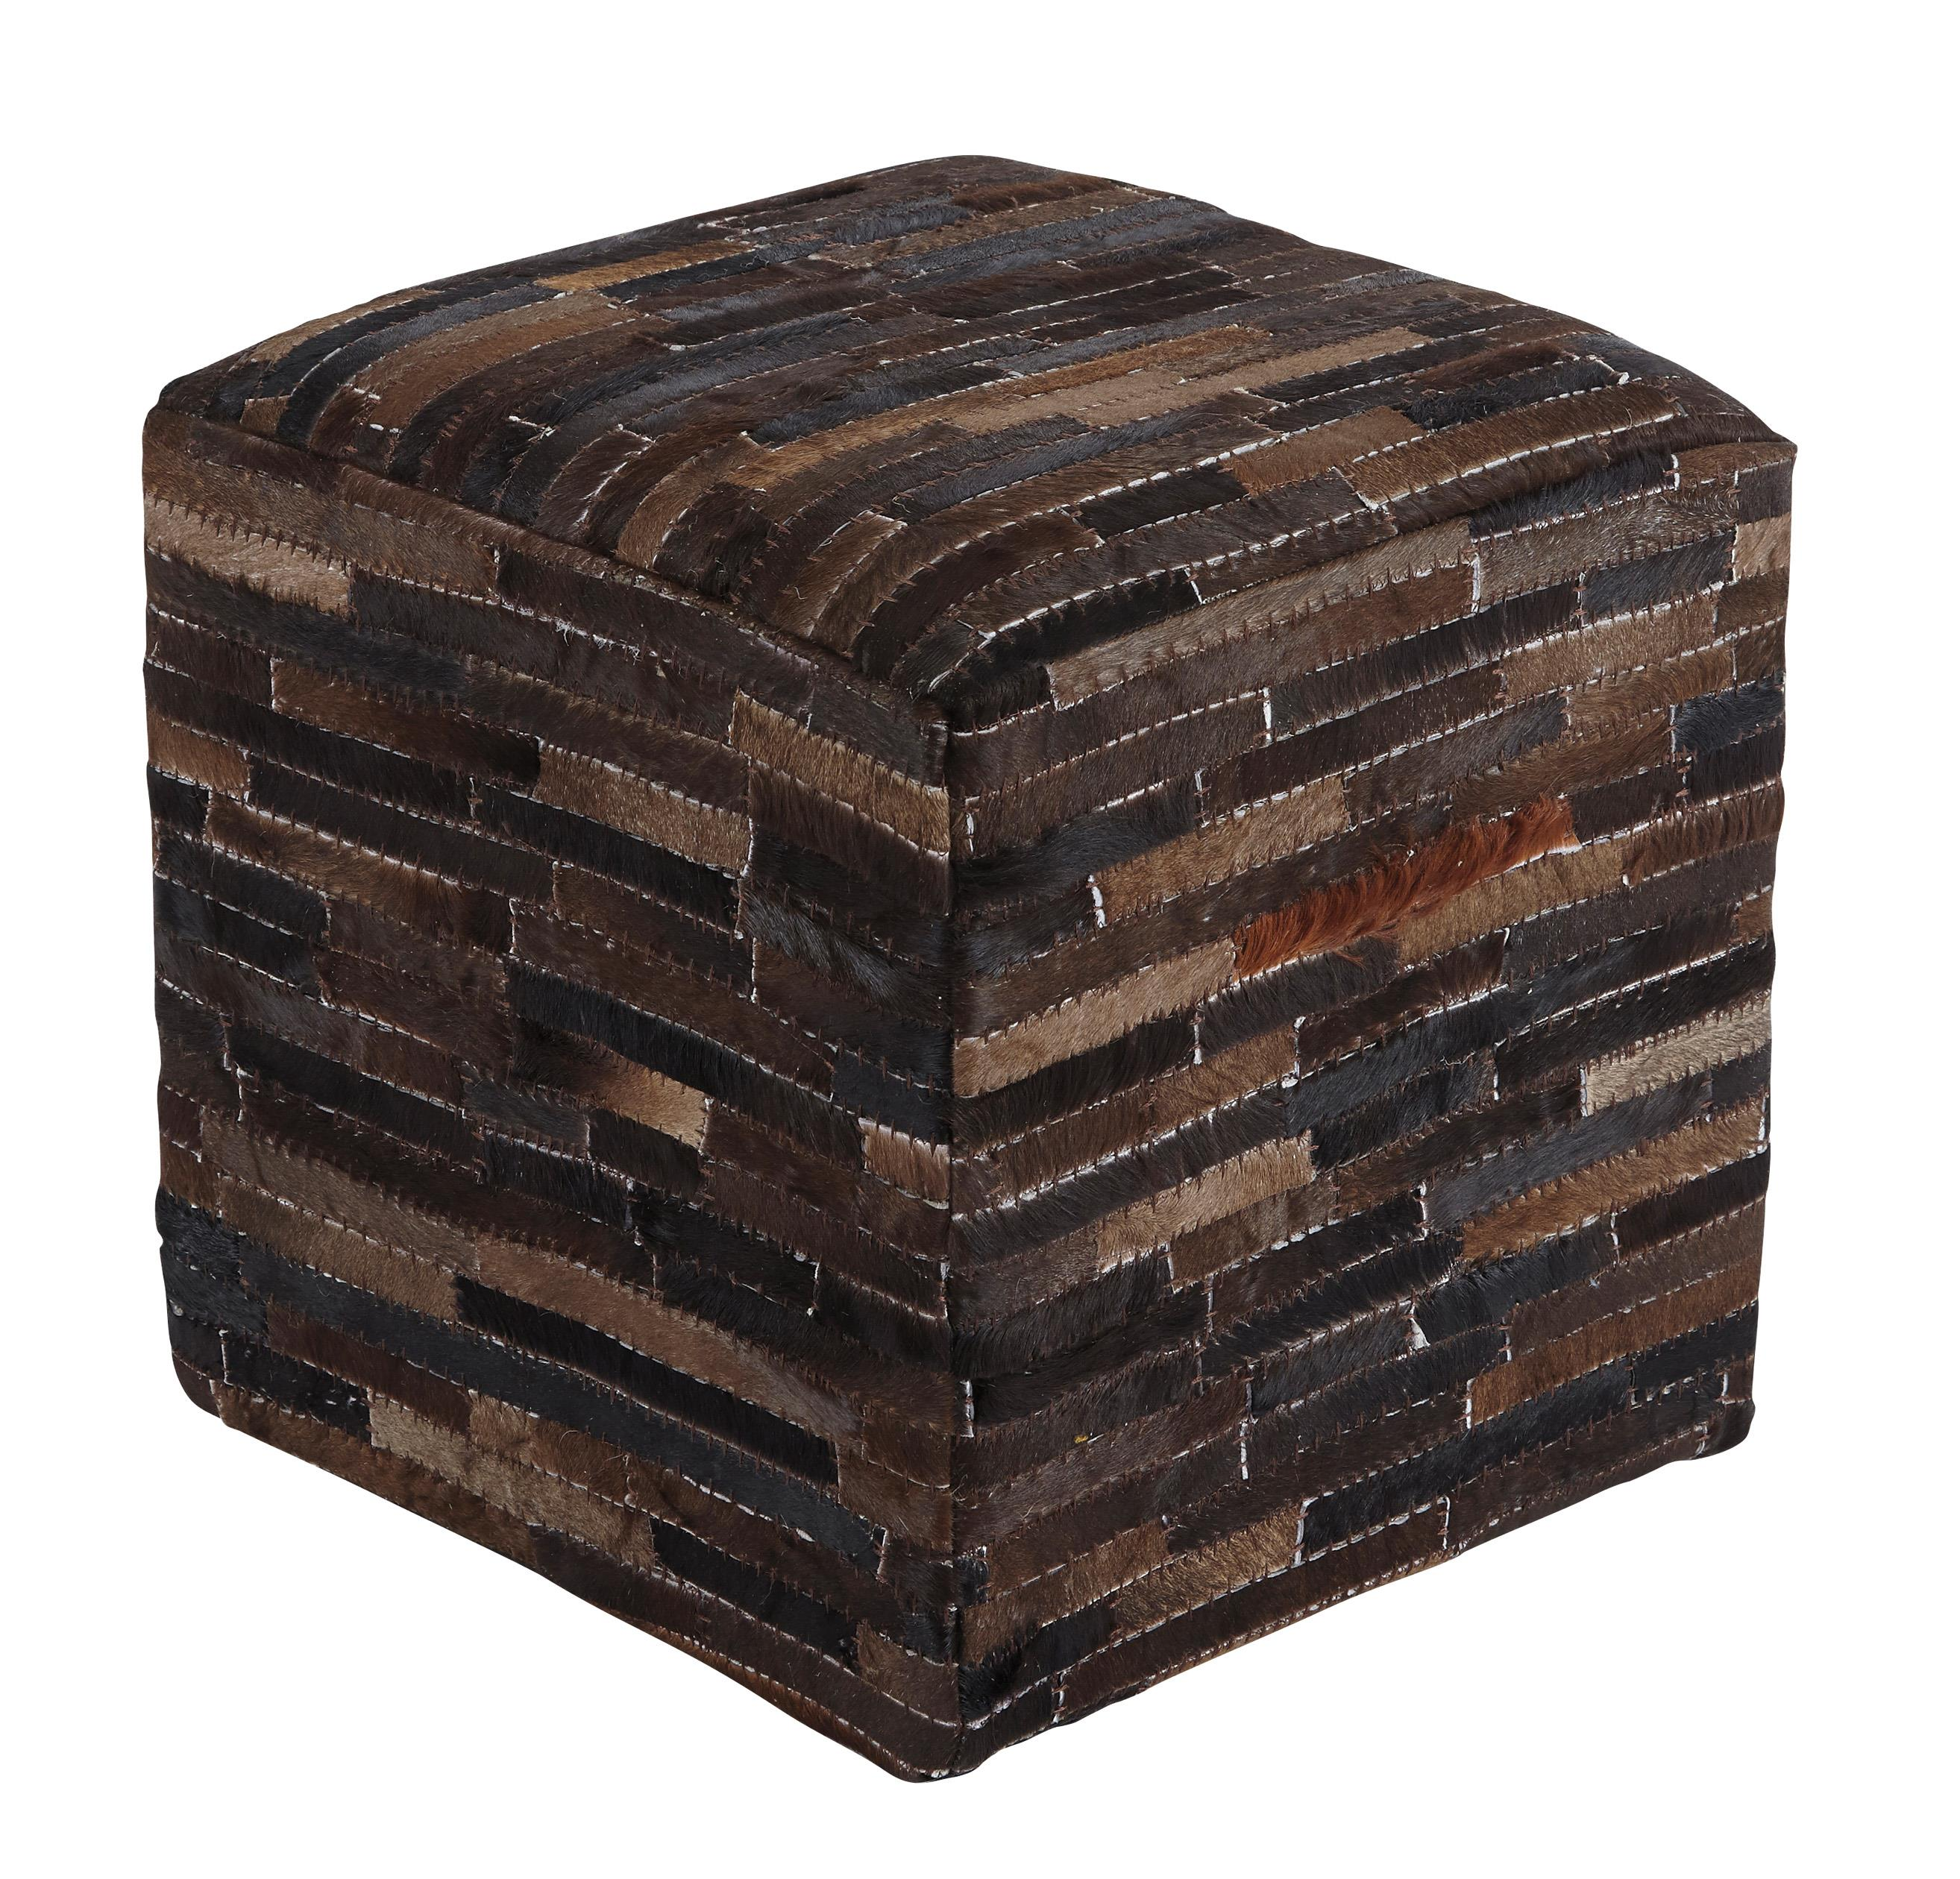 Signature Design by Ashley Poufs Cowhide - Dark Brown Pouf - Item Number: A1000448